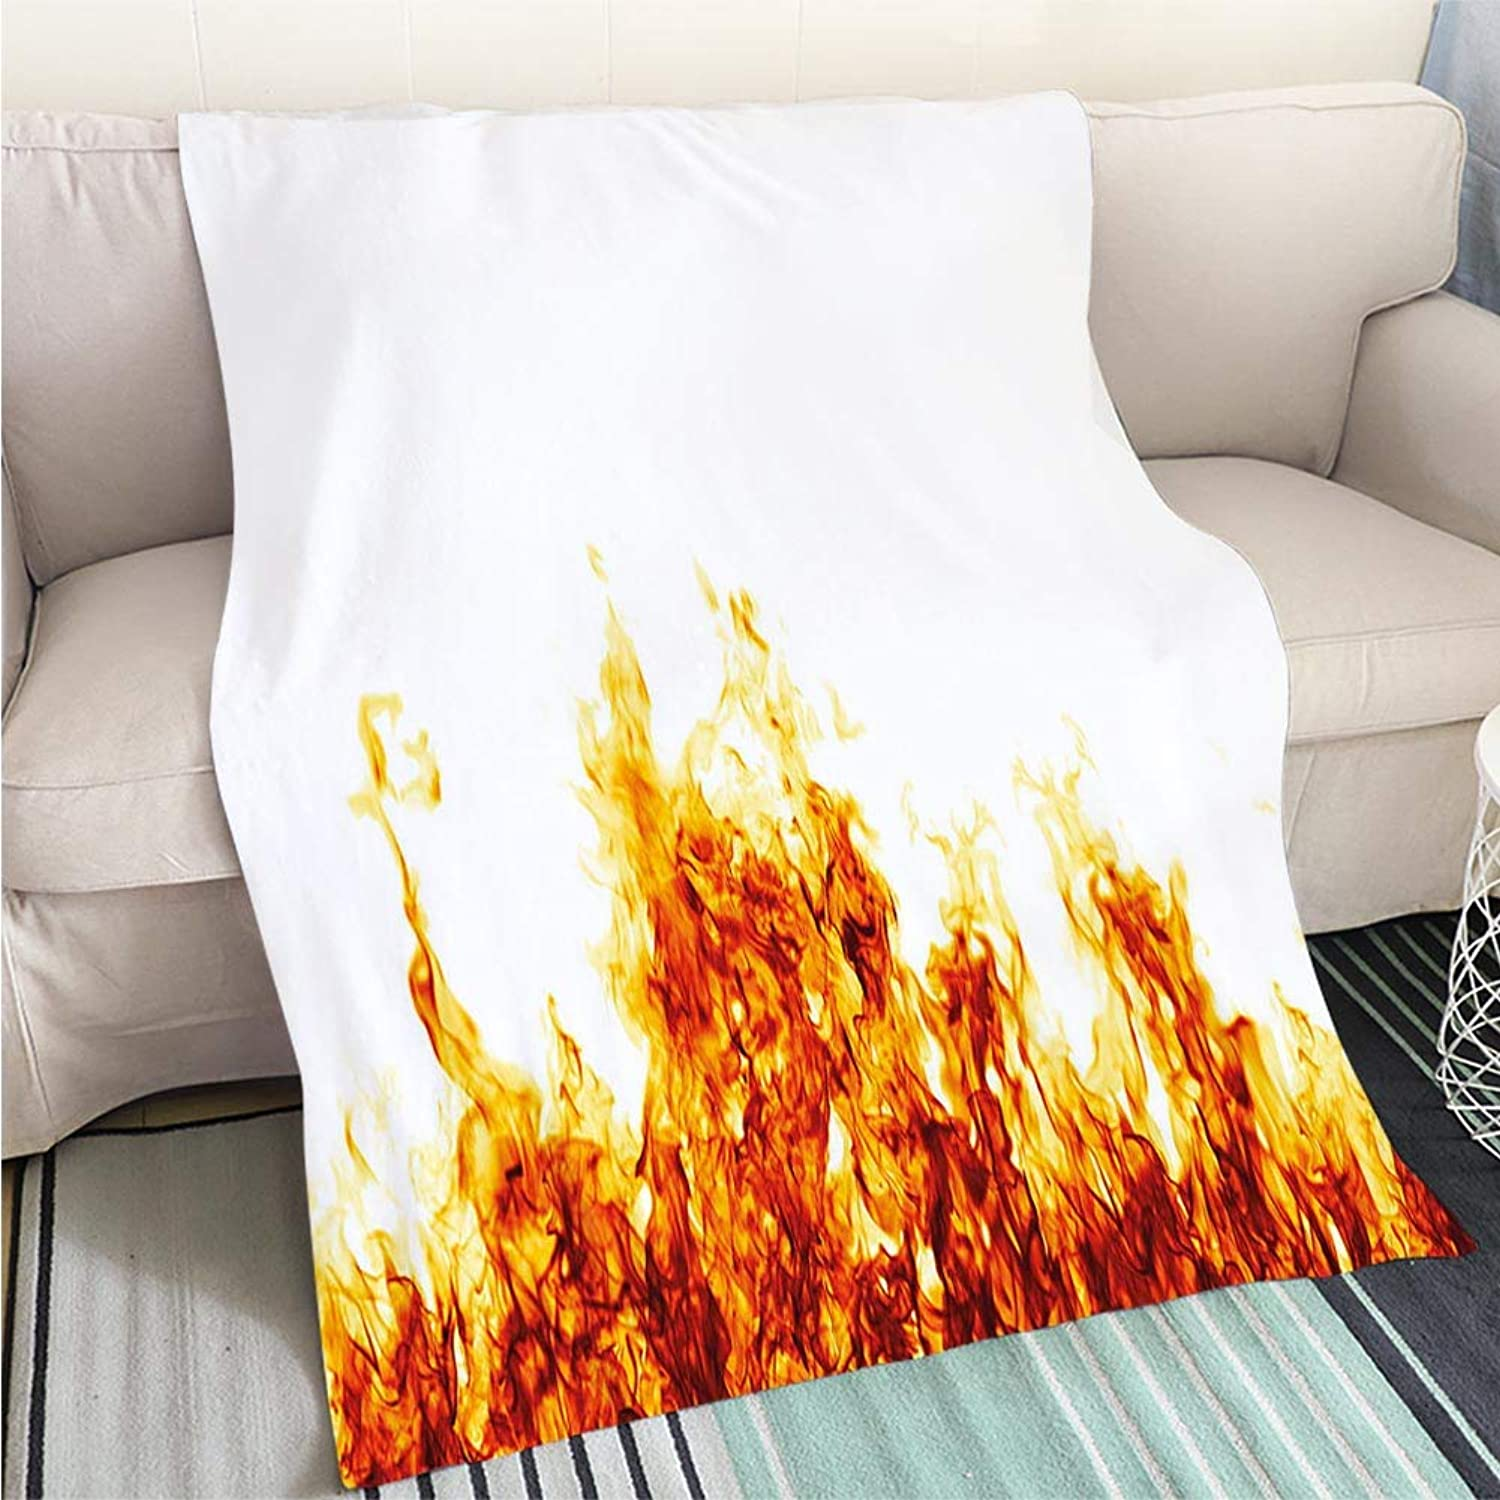 Art Design Photos Cool Quilt fire Flame Isolated Over White Background Hypoallergenic Blanket for Bed Couch Chair